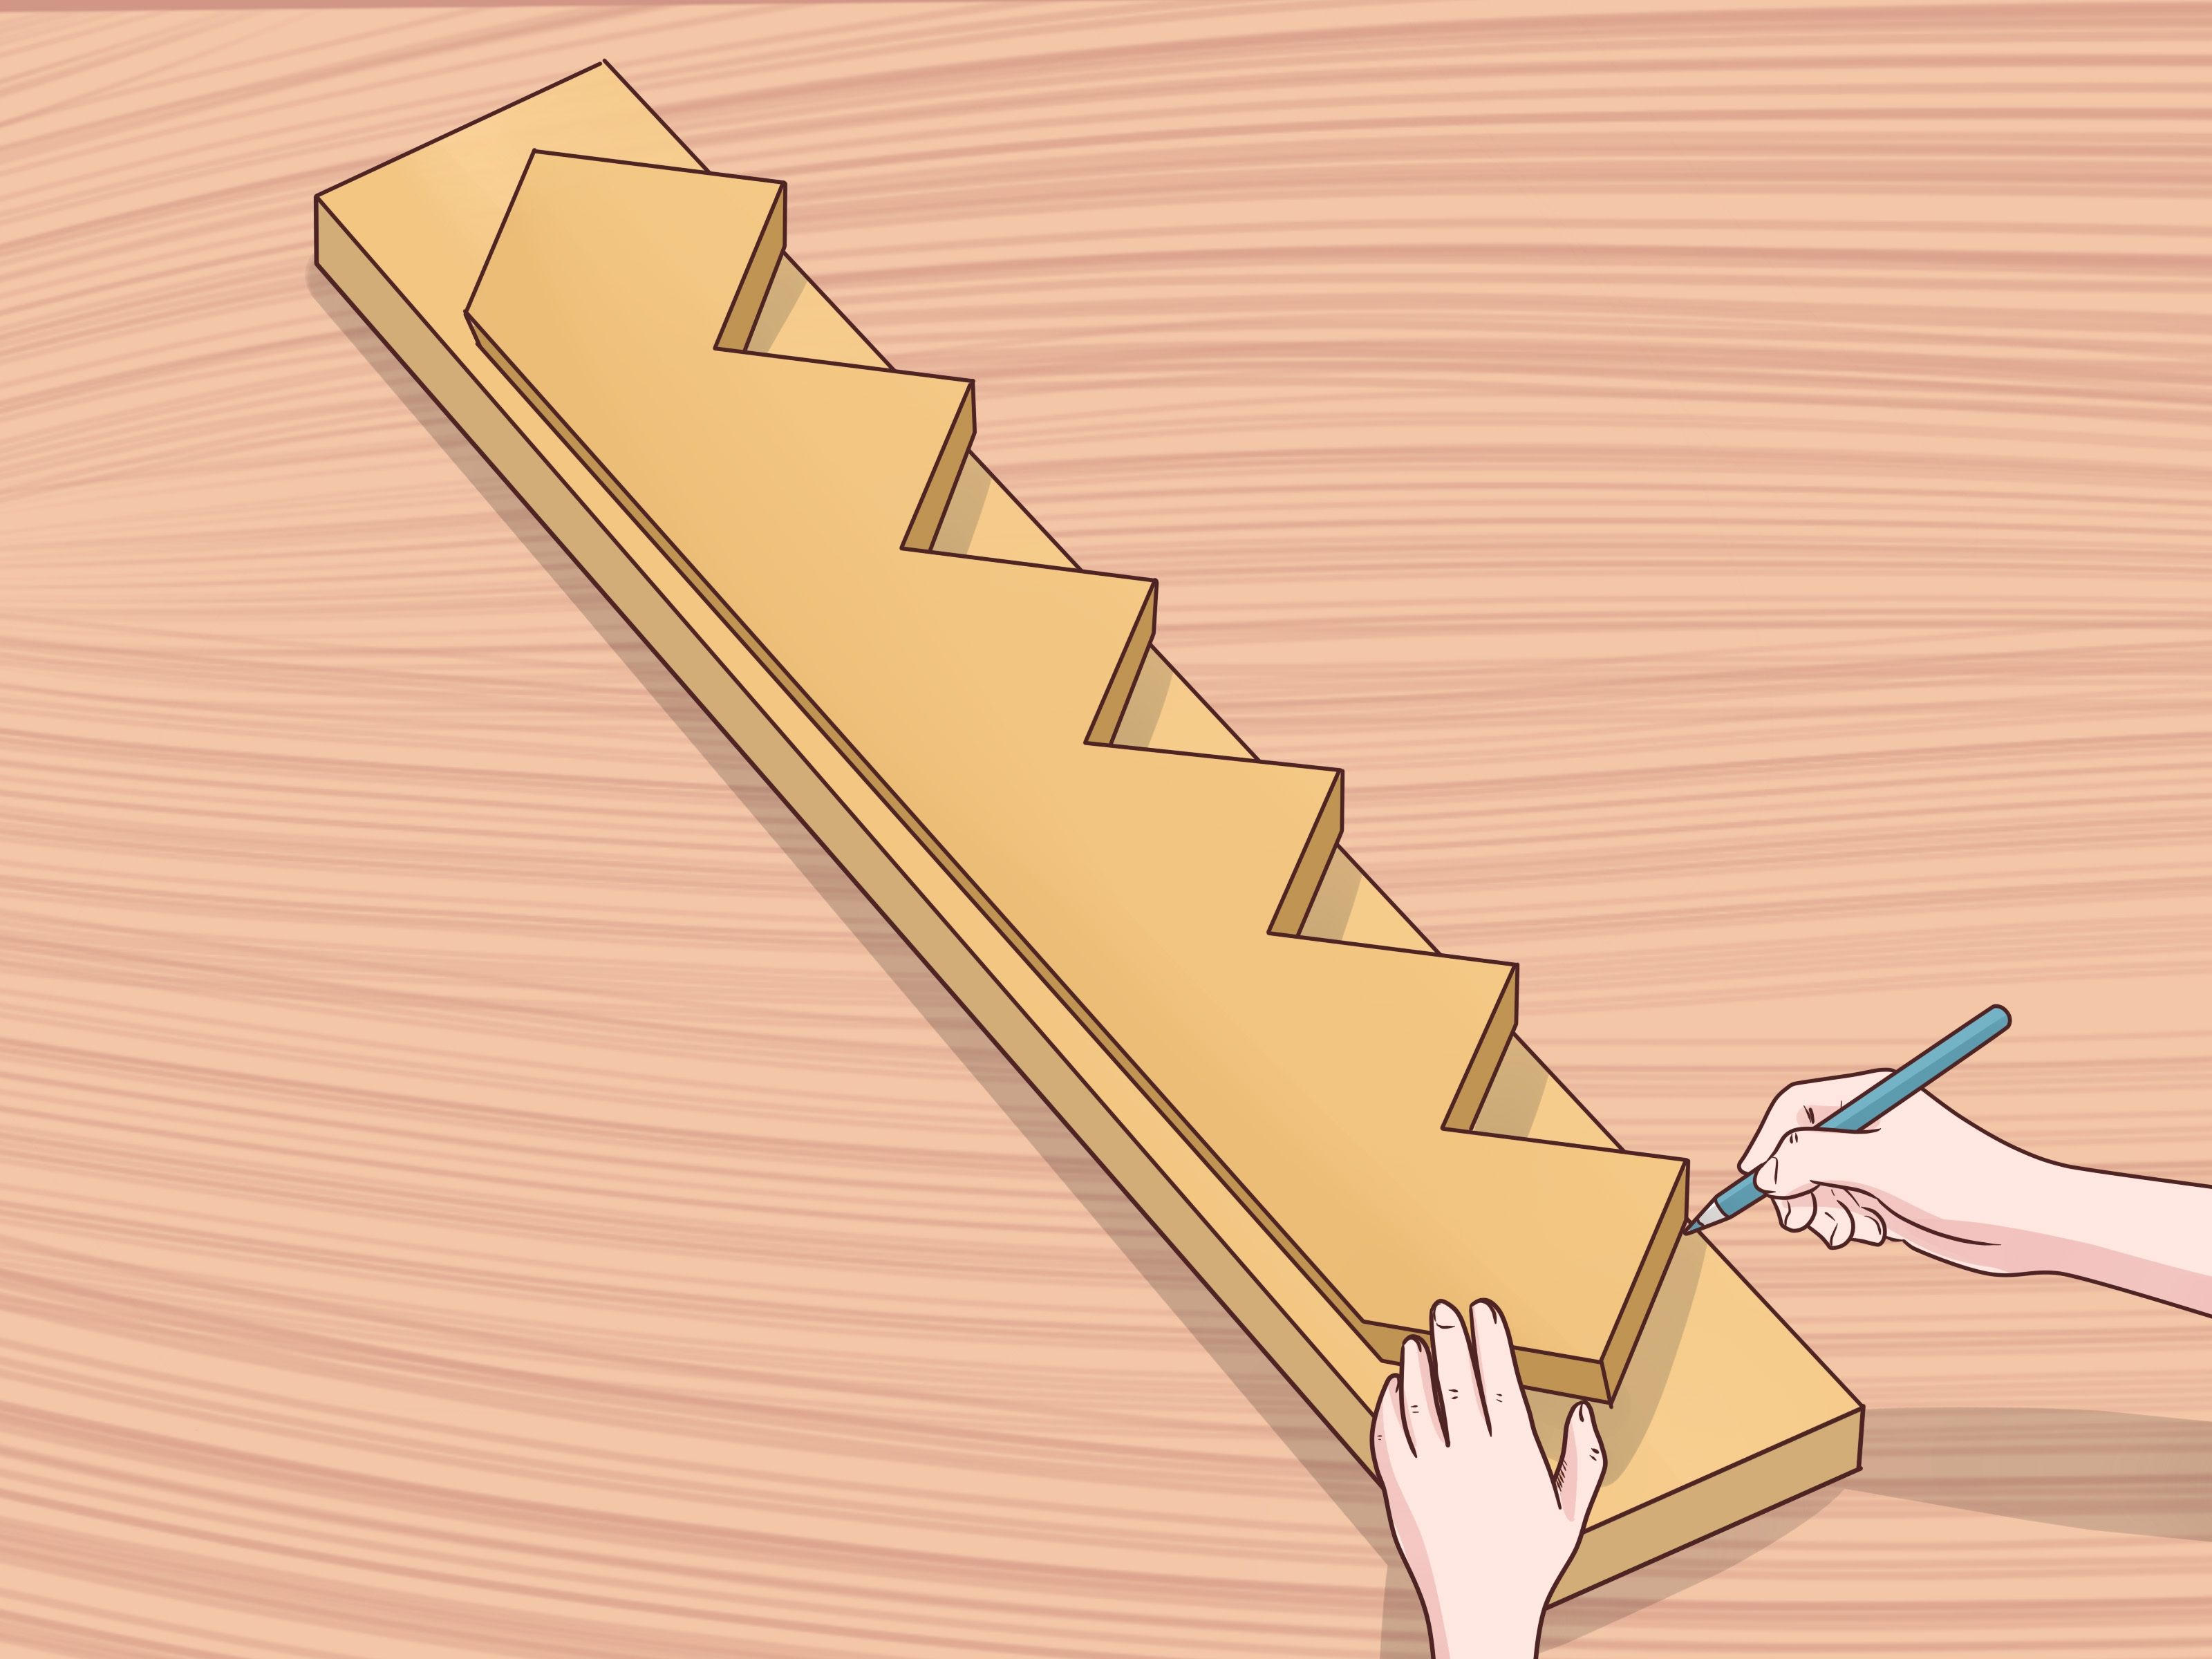 How To Cut Stair Stringers 15 Steps With Pictures Wikihow | Best Wood For Stairs | Engineered Hardwood | Stairway | Engineered Wood Flooring | Staircases | Wooden Staircase